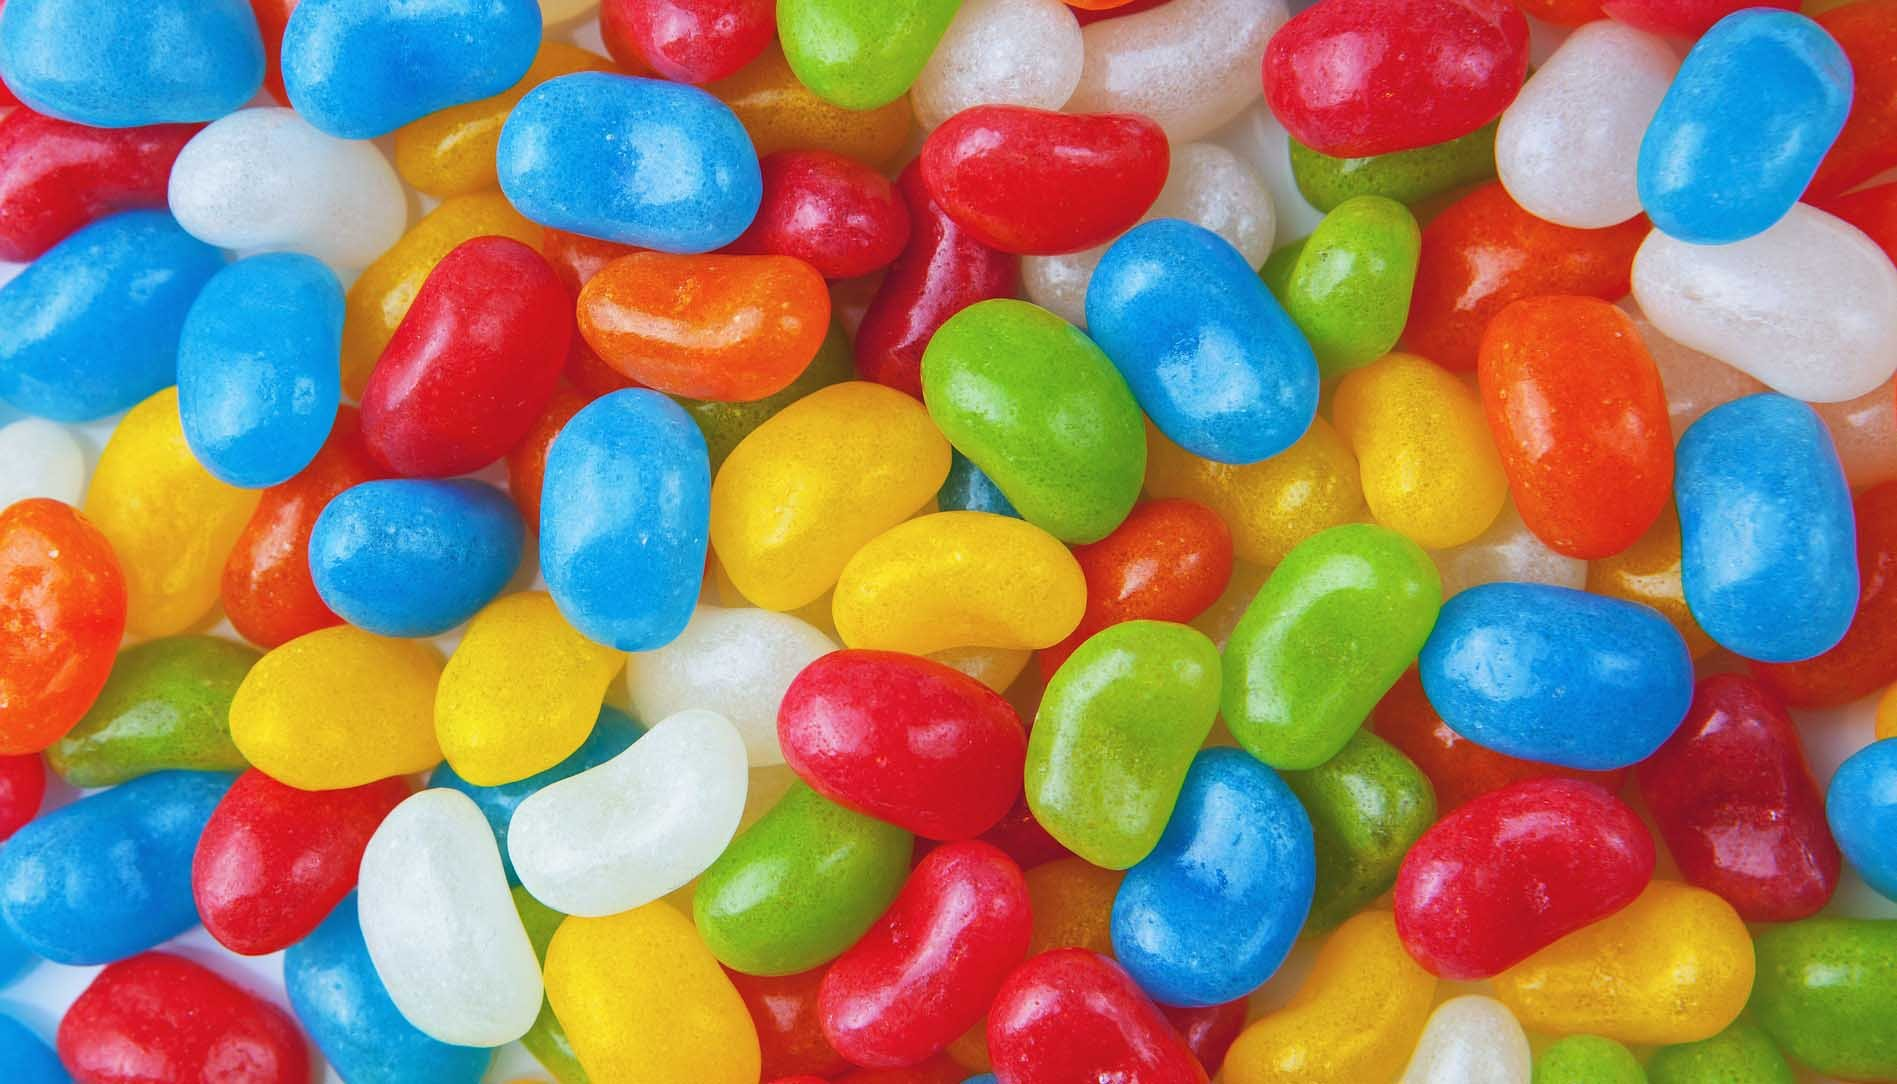 Earth Day falls on April 22 – so does National Jelly Bean Day. (Source: Pixabay)